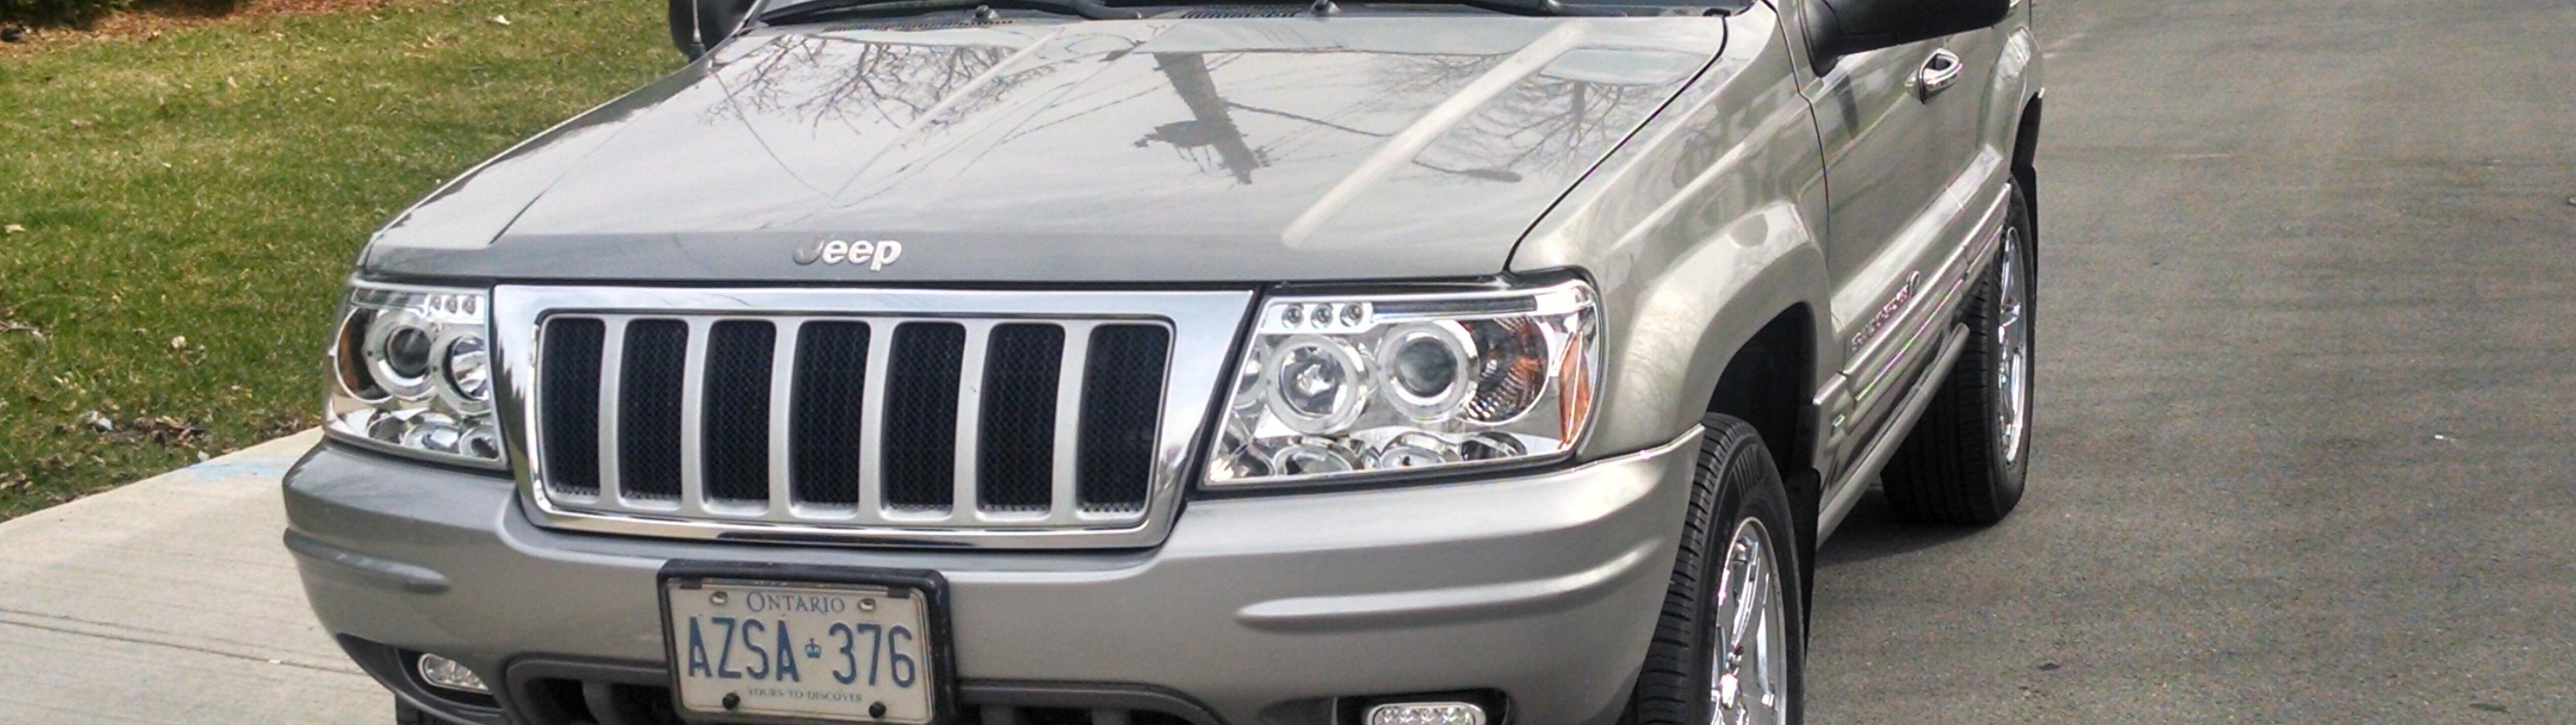 gillster6's 2002 Jeep Grand-Cherokee